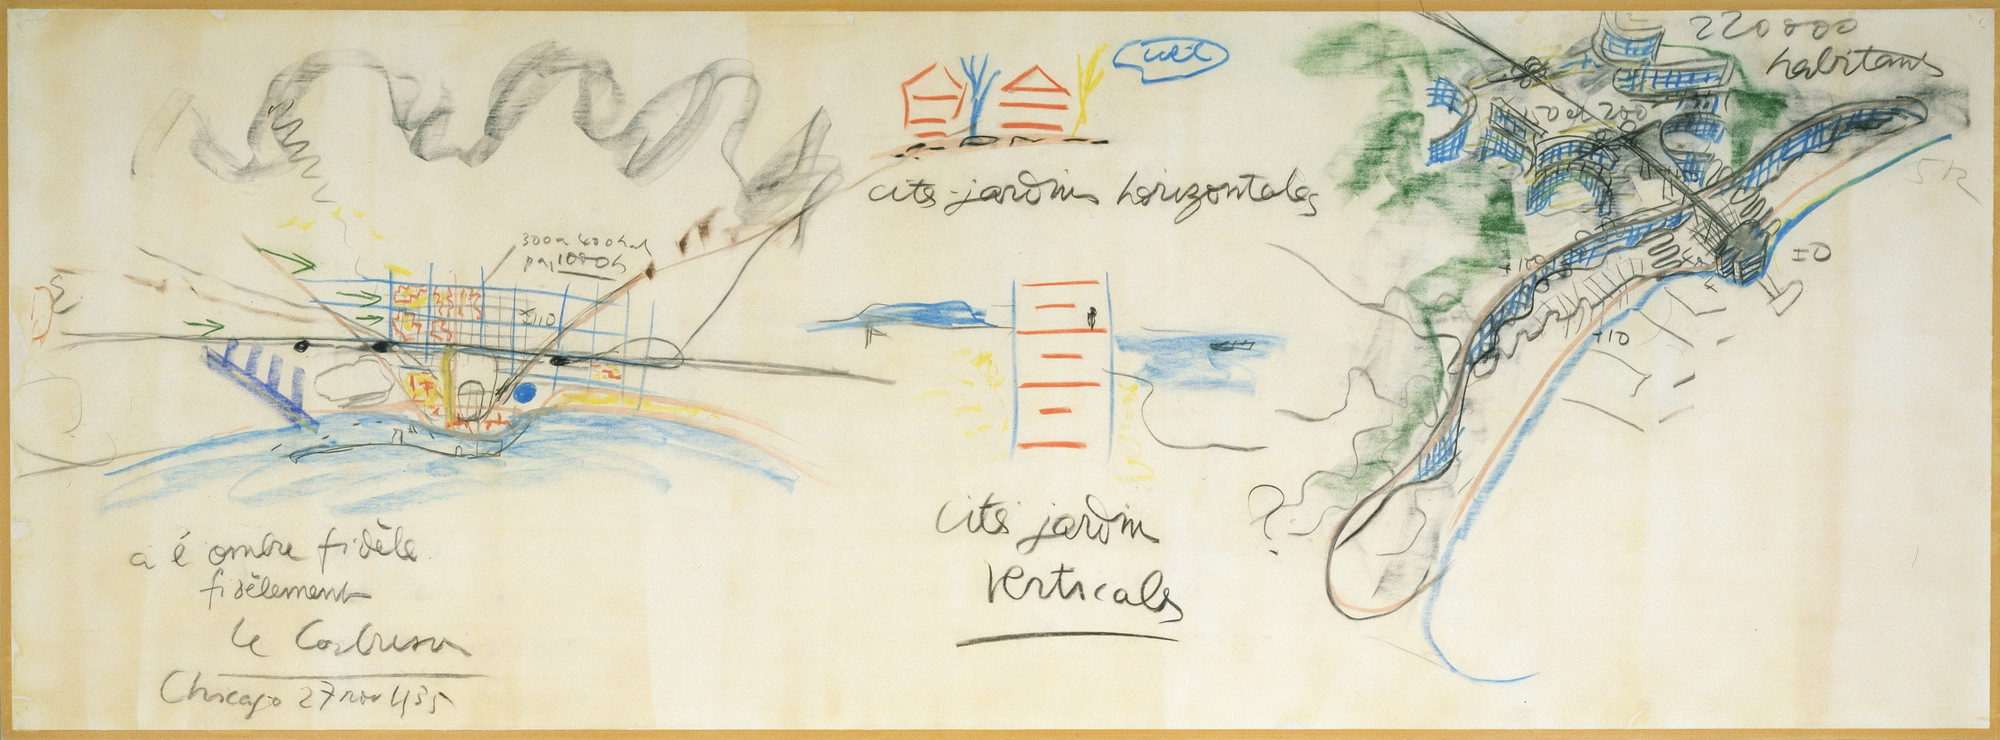 "Le Corbusier (Charles-Édouard Jeanneret). Plans for Algiers and Barcelona and ""cité-jardin verticale"" (vertical garden city) drawing made during a lecture in Chicago November 27, 1935. 1935"